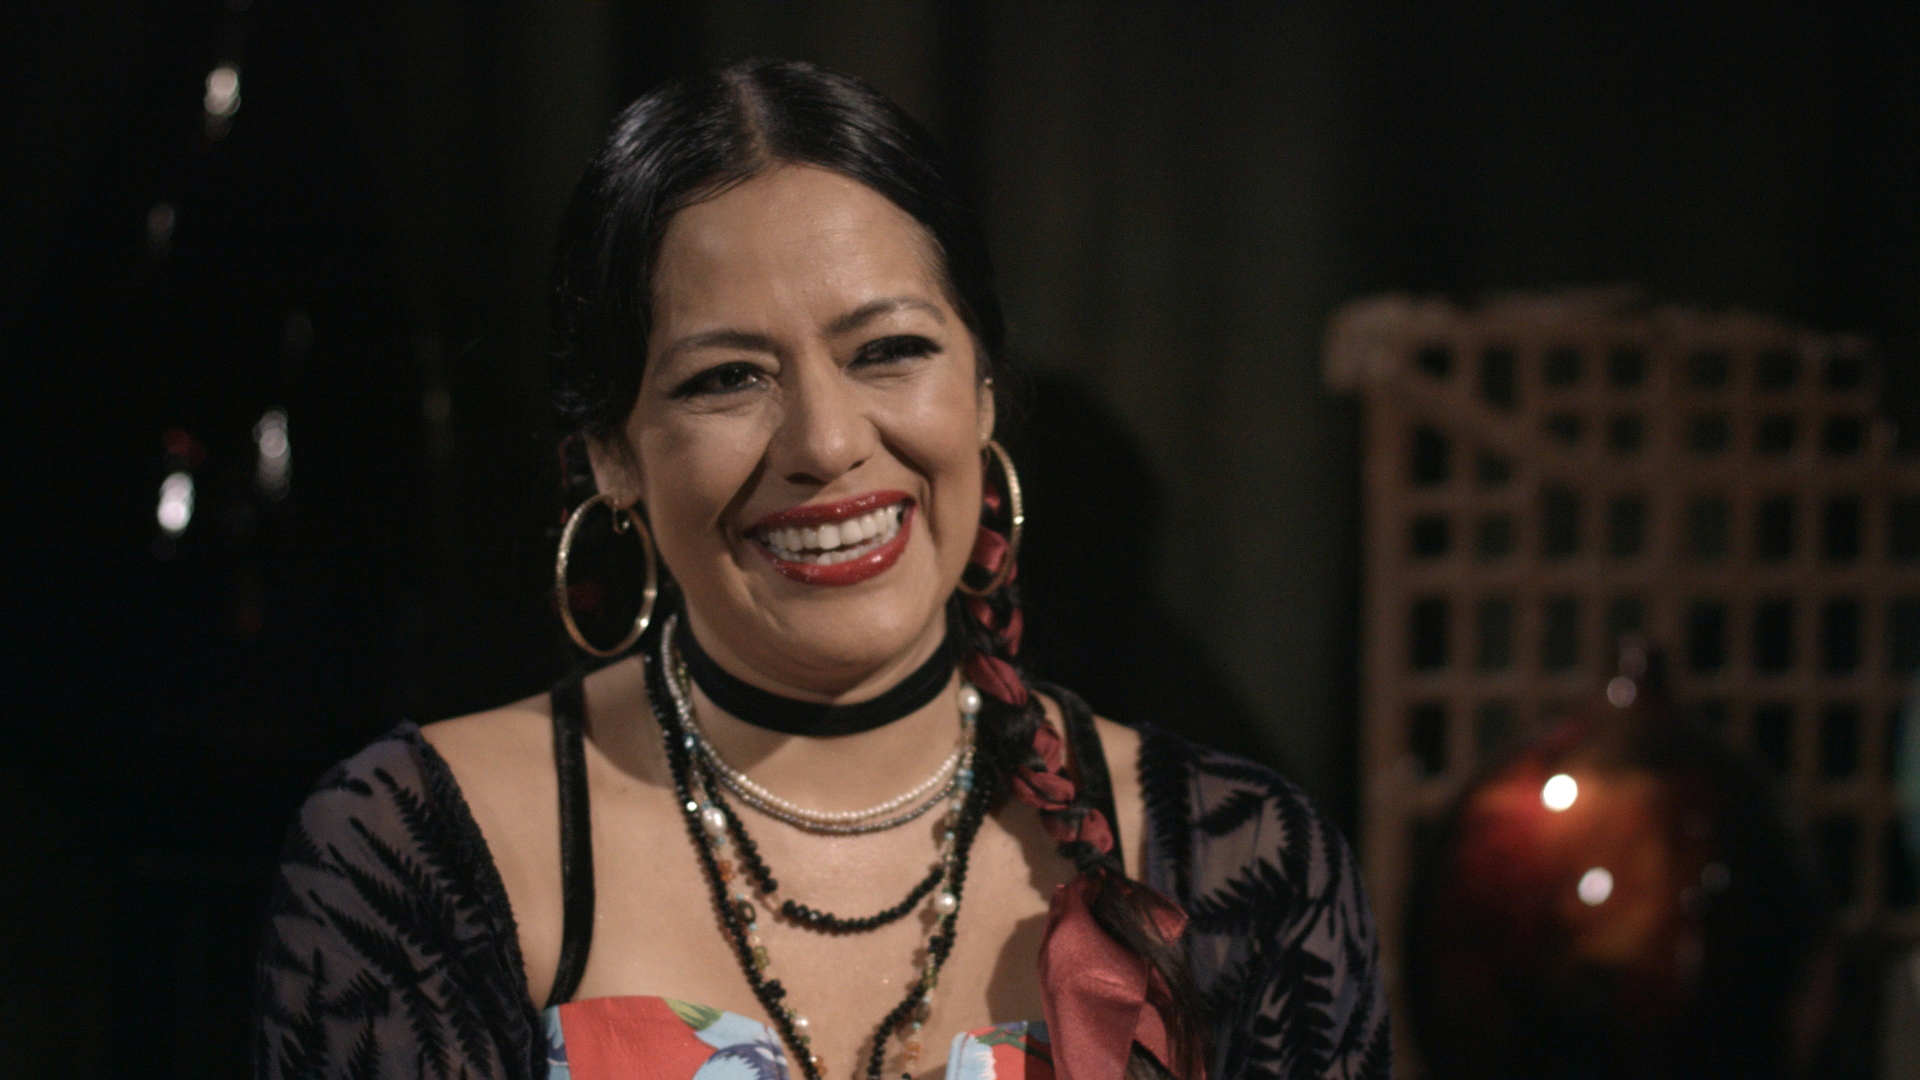 The united states of lila downs - Singer-songwriter Lila Downs creates music that reflects her Mexican-American heritage.Season 3, Episode 6